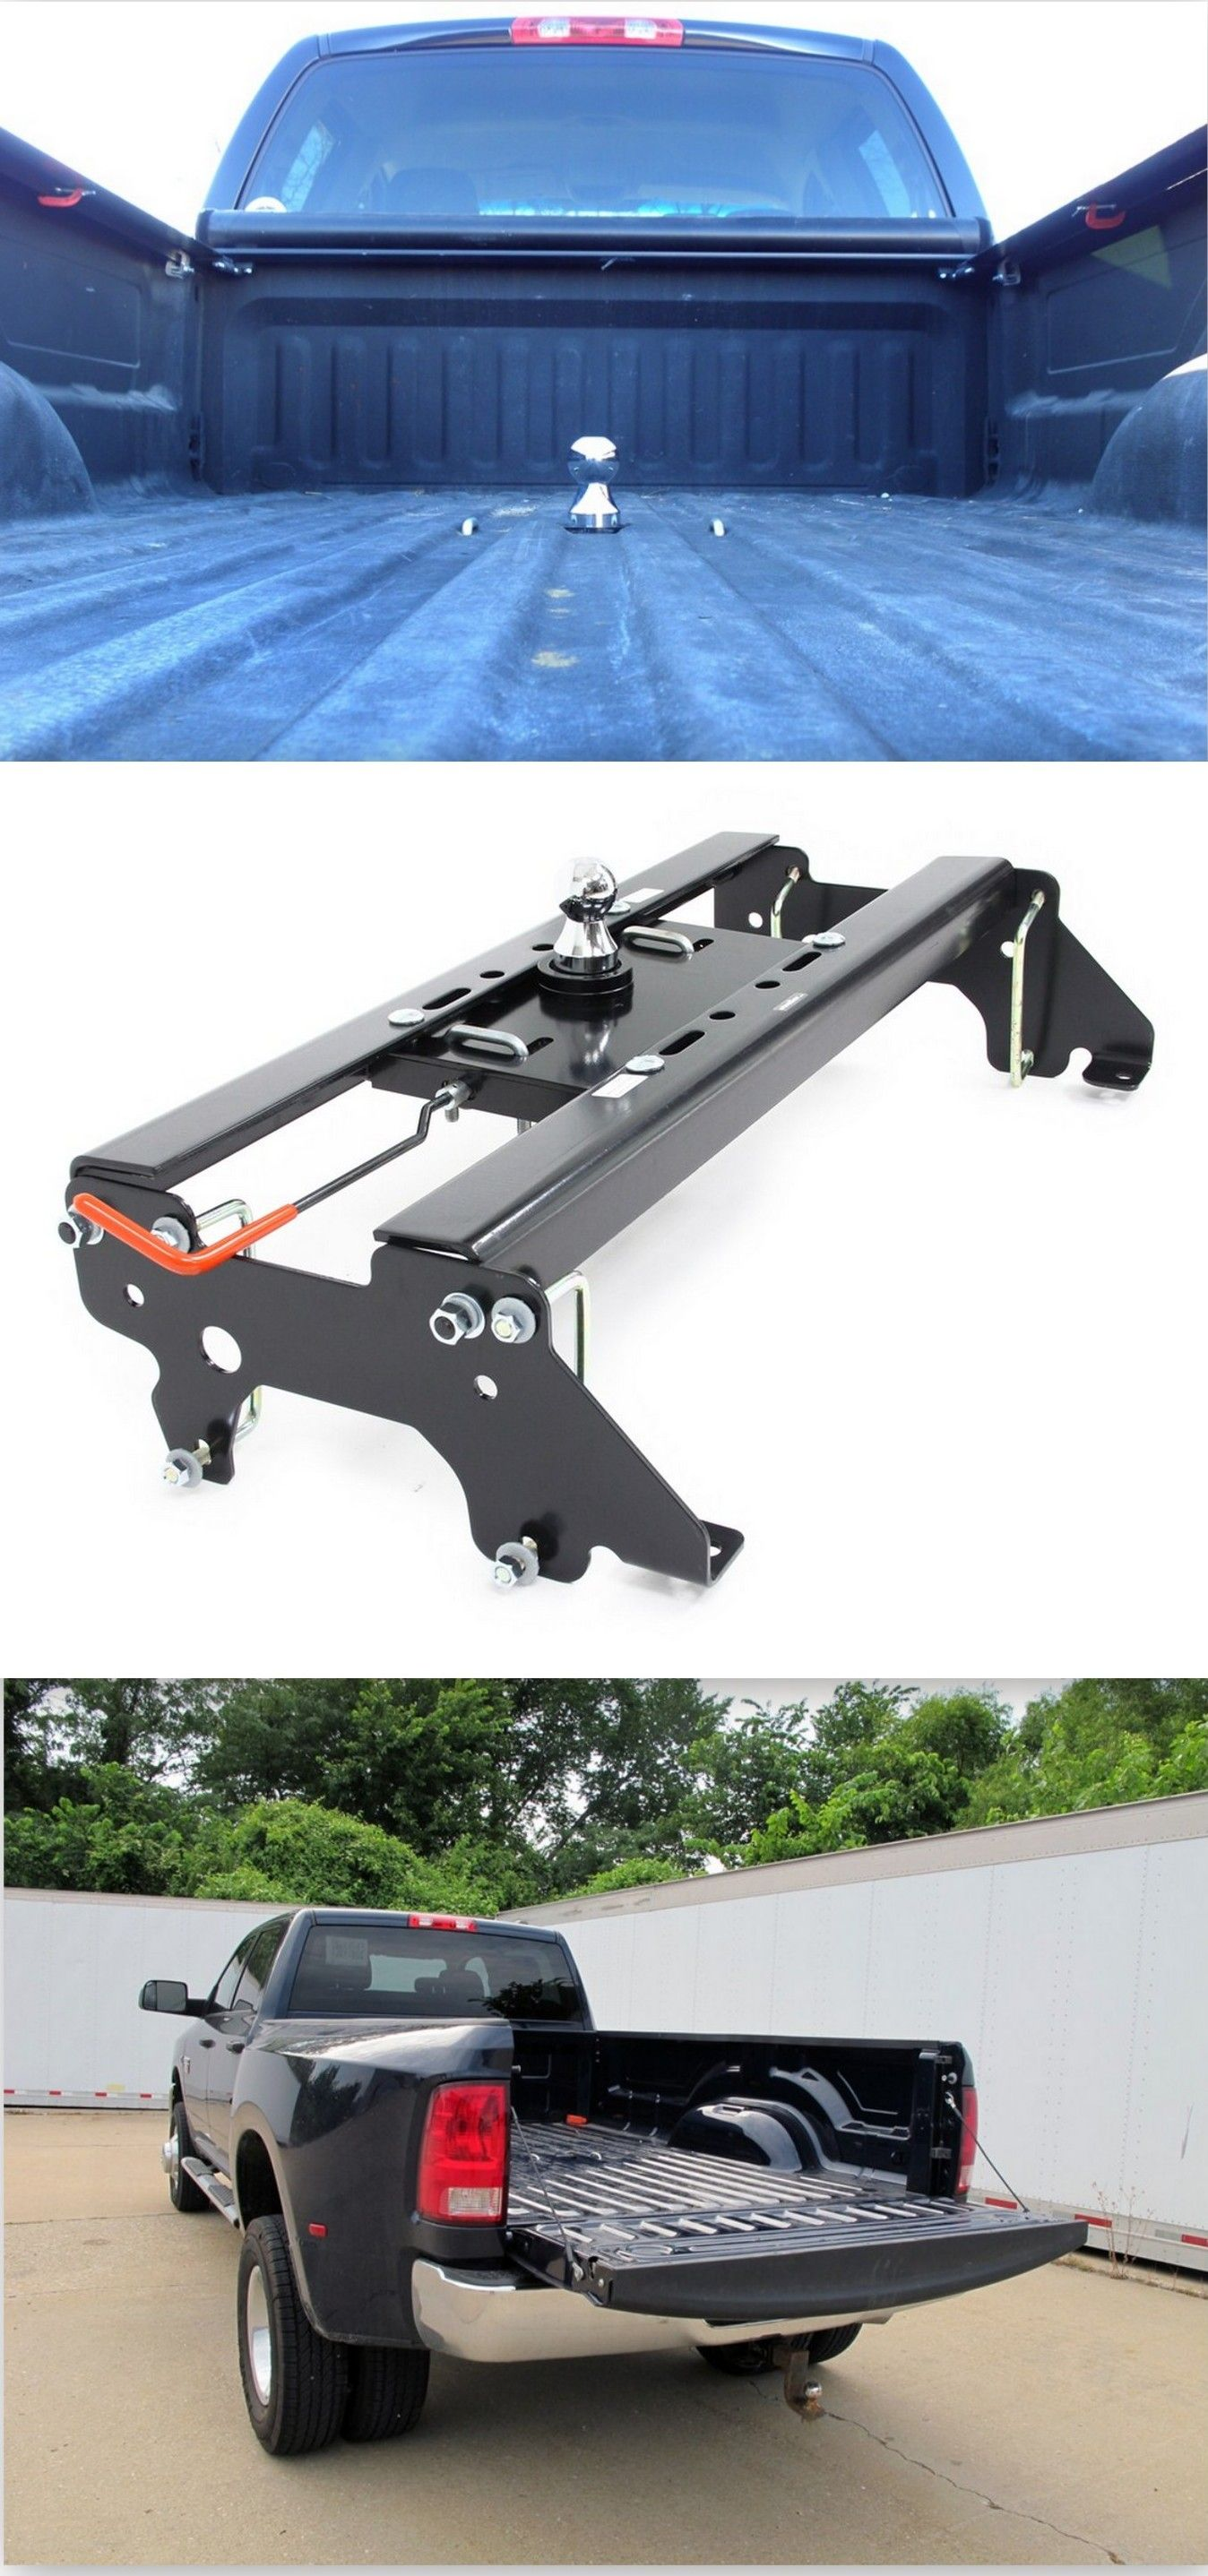 Hide-A-Goose Underbed Gooseneck Trailer Hitch Installation Kit - Dodge Ram  Trucks - 2012 Ram Pickup by Dodge